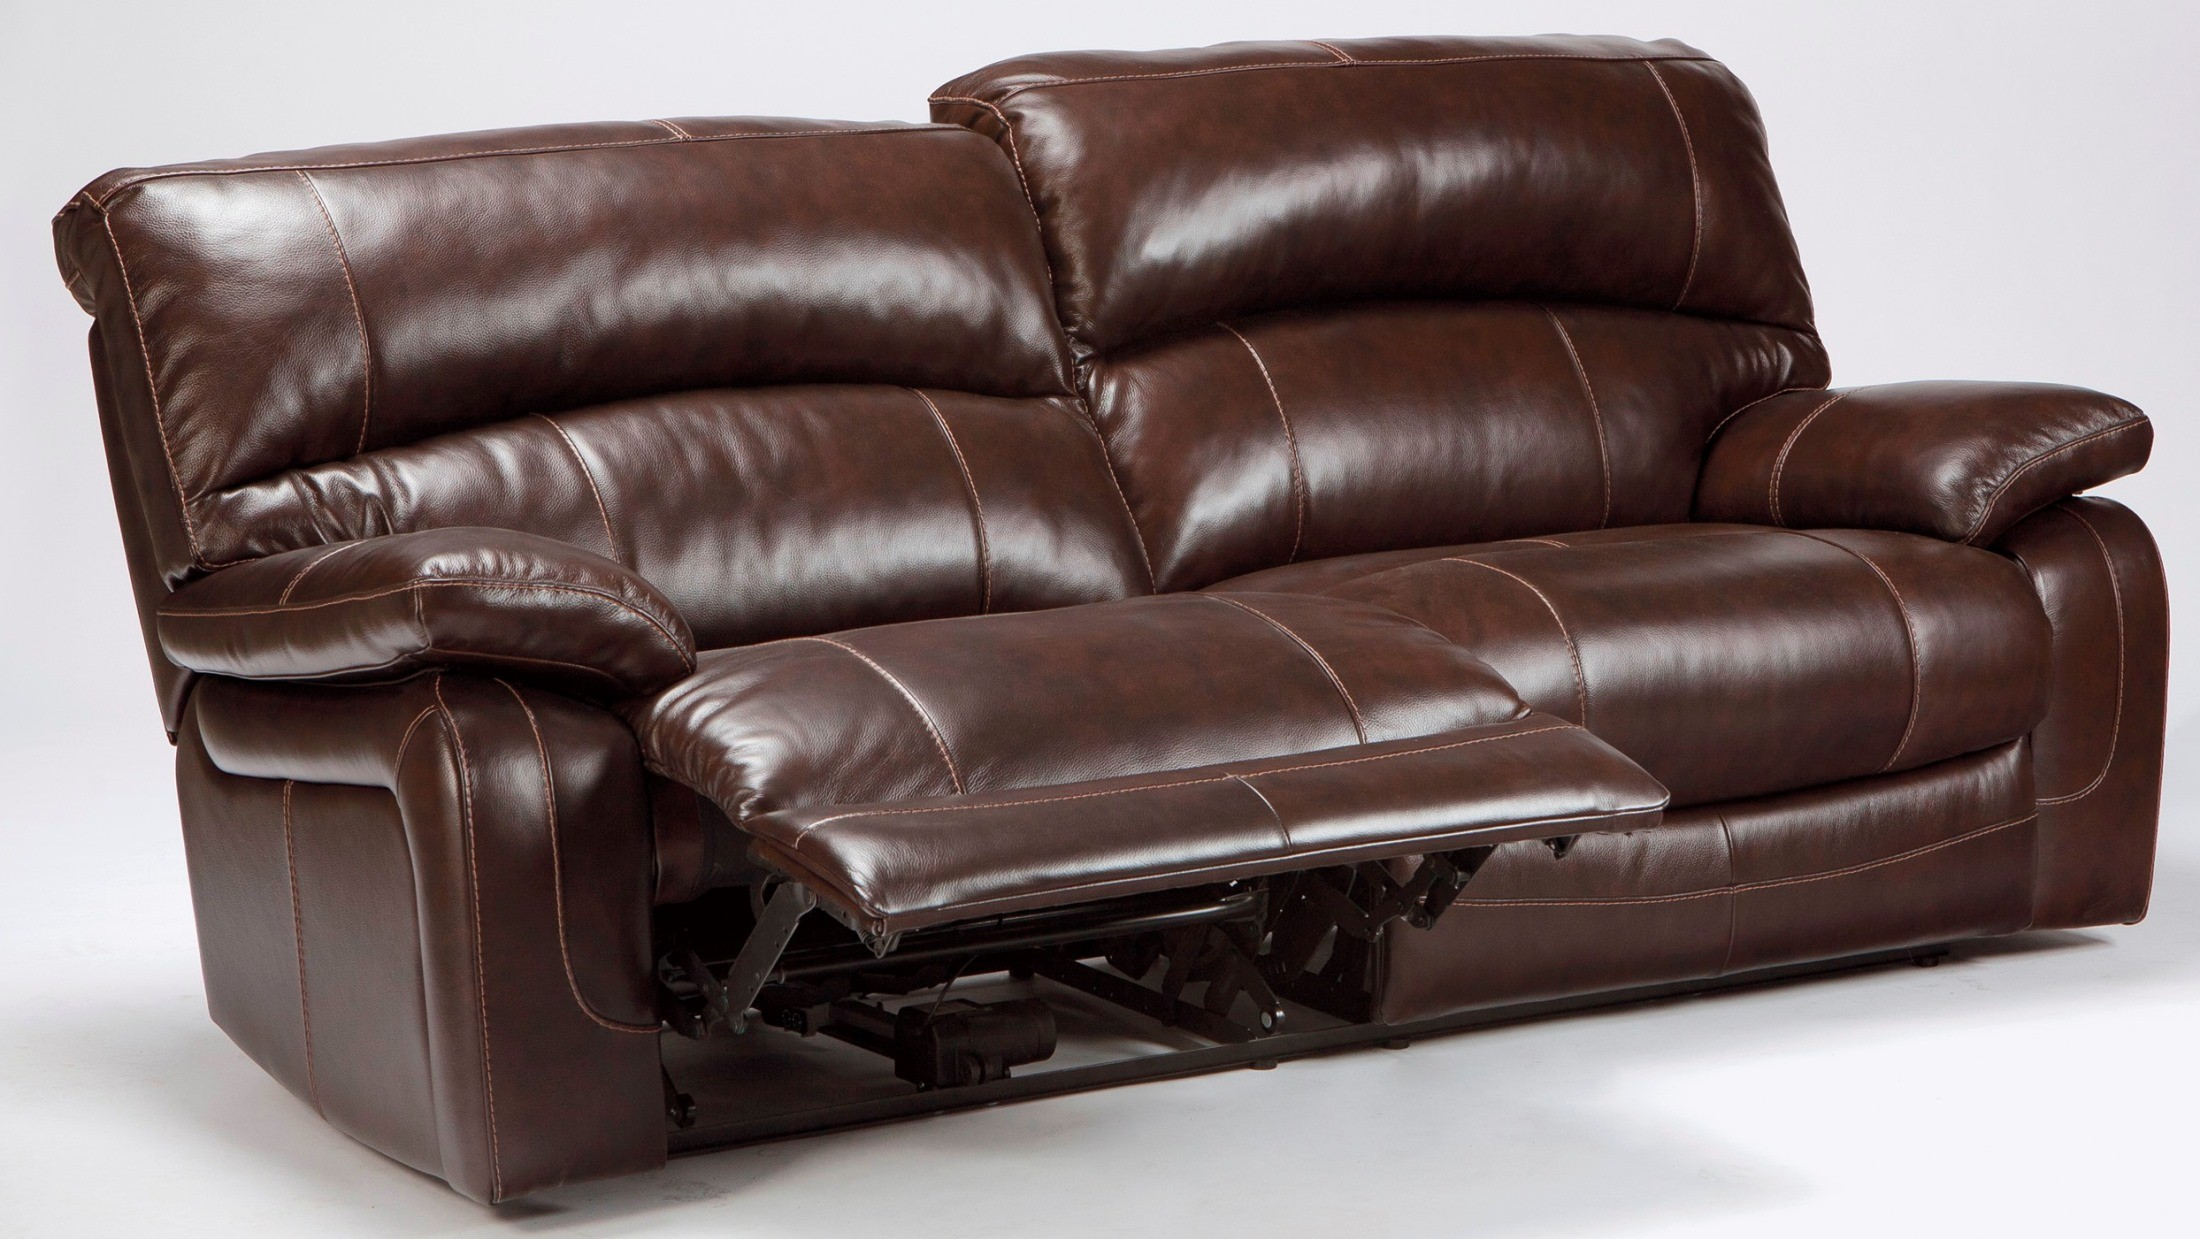 Damacio Dark Brown 2 Seat Reclining Sofa From Ashley U9820081